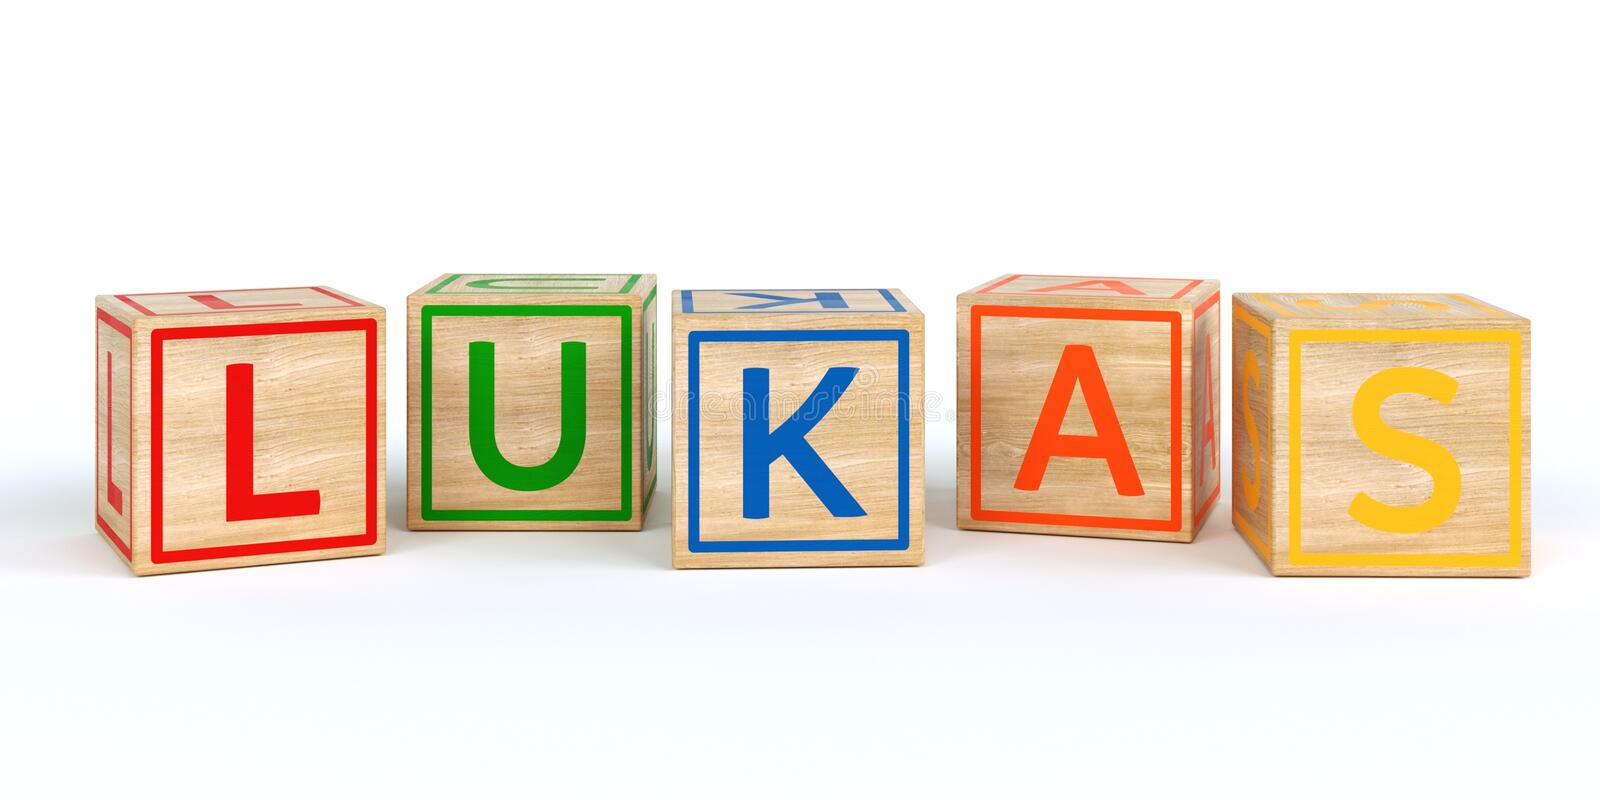 Isolated wooden toy cubes with letters with name lukas royalty free illustration